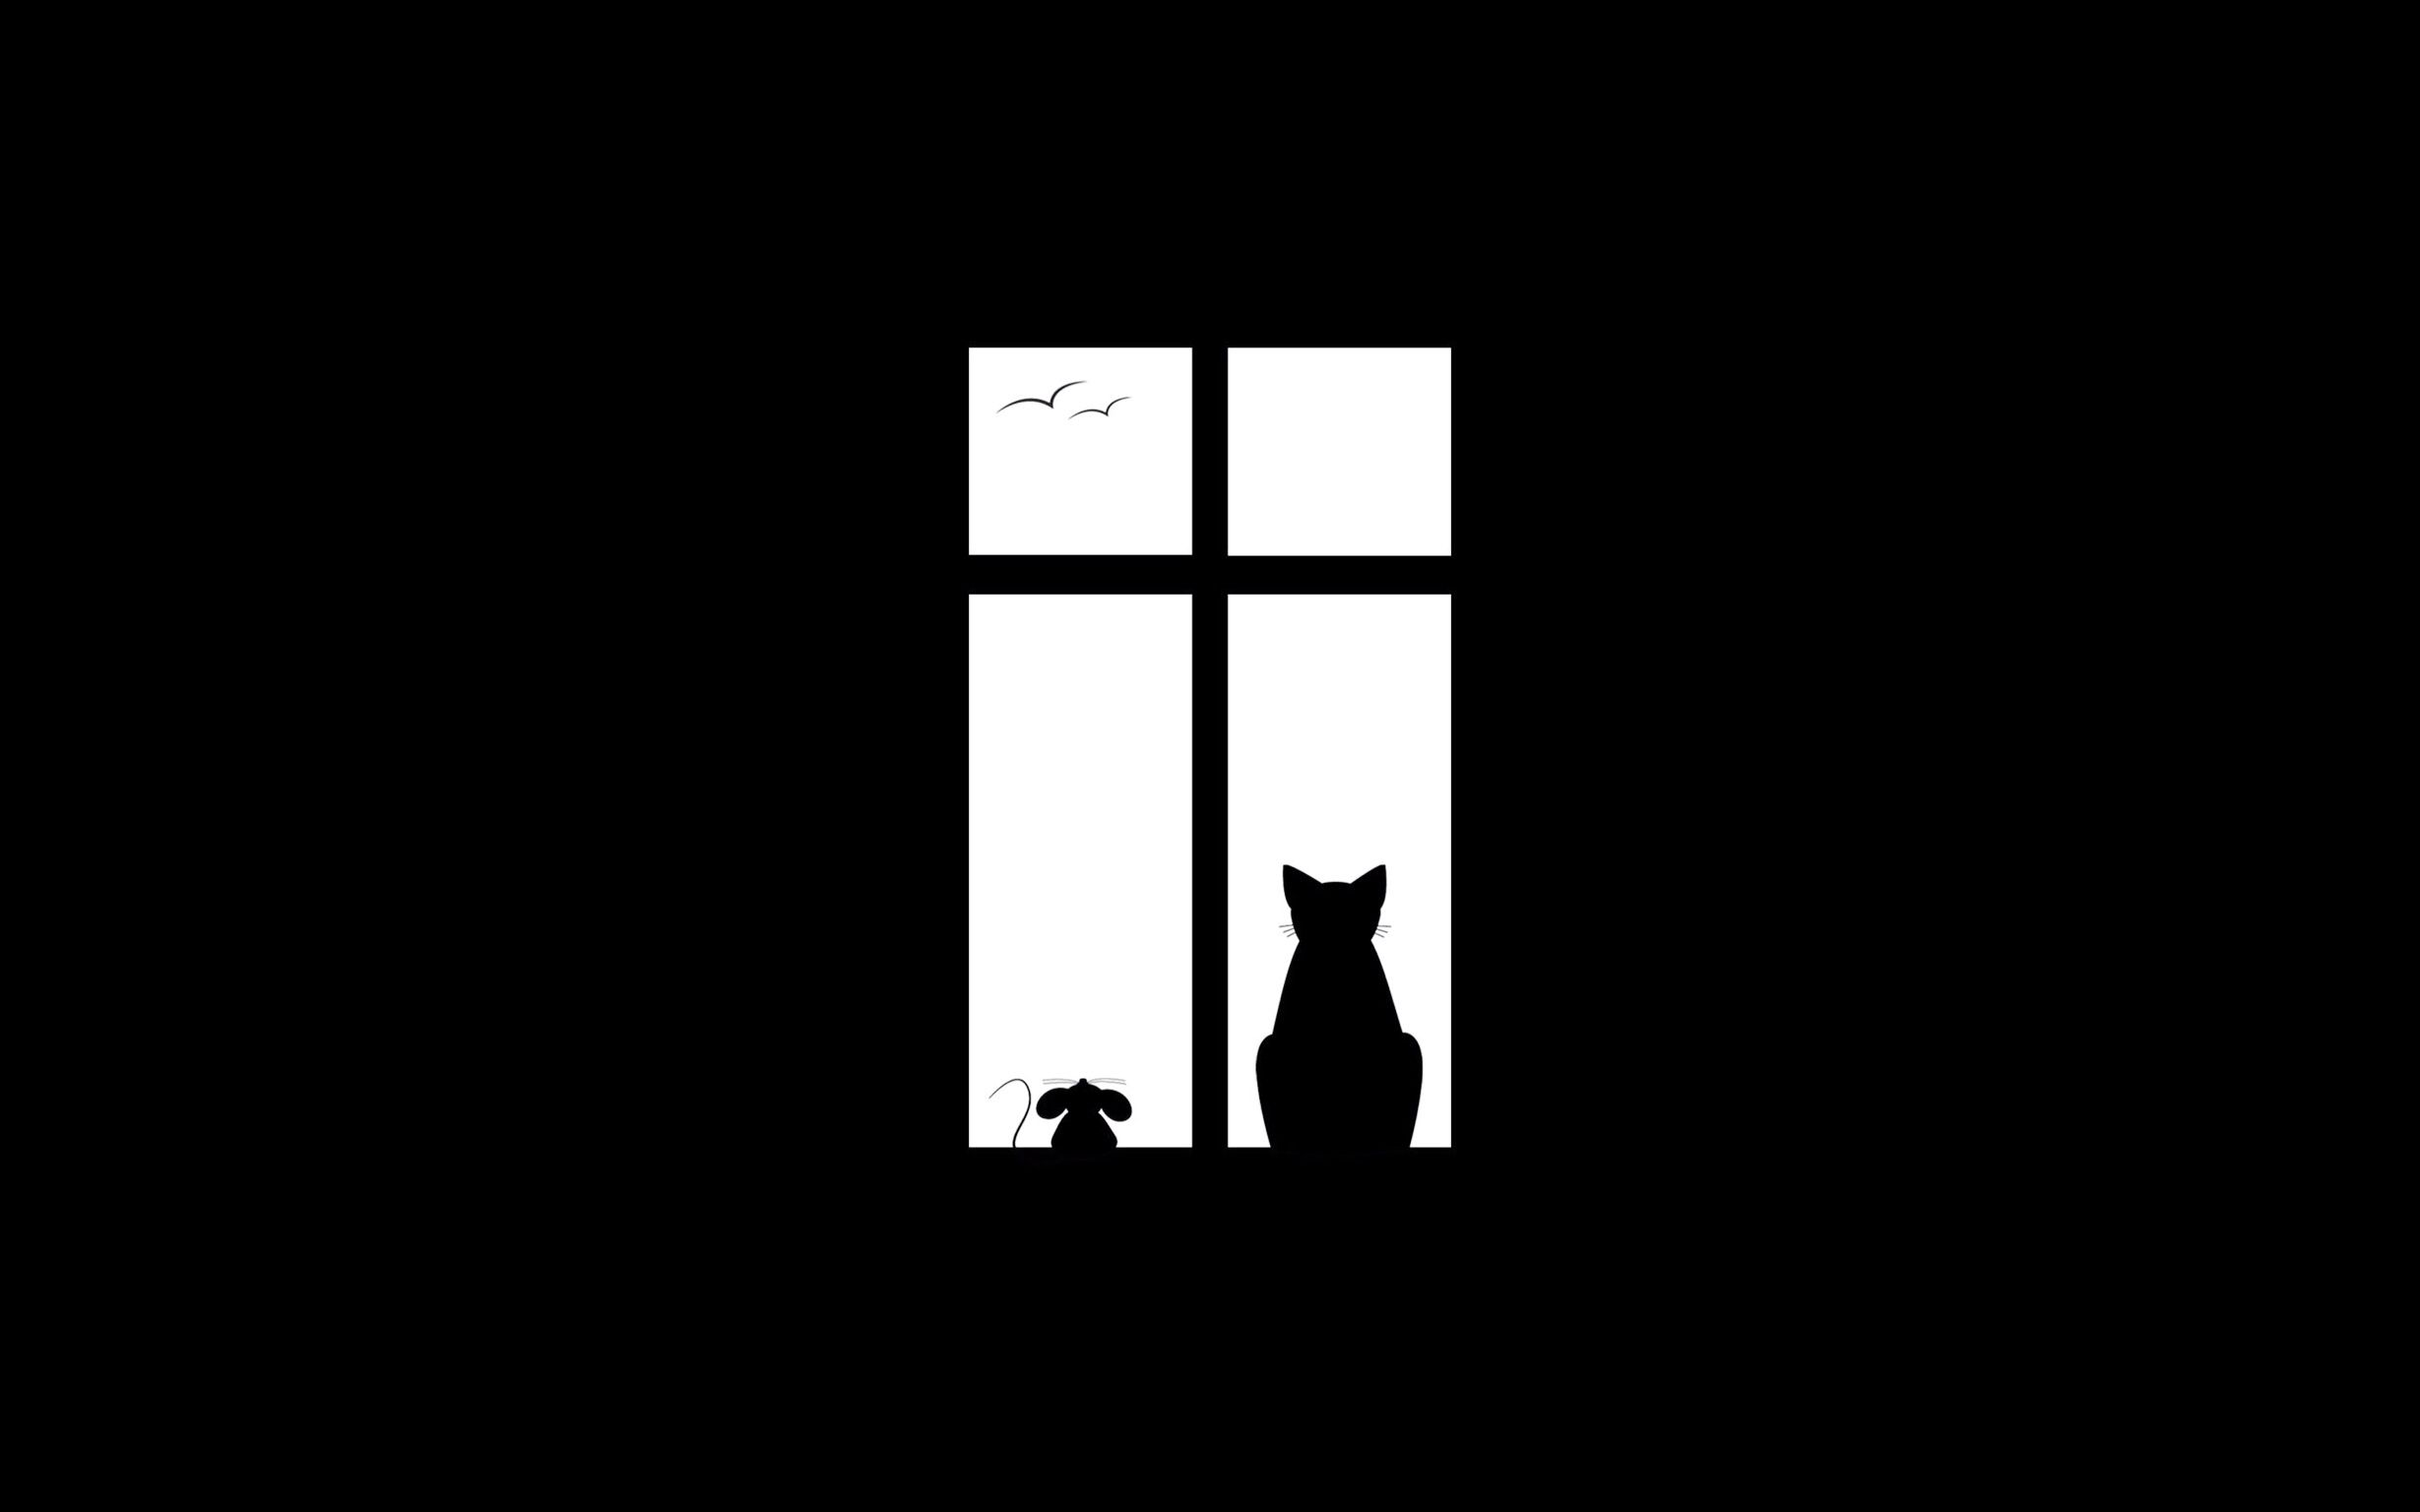 Silhouette Of Cat Mouse In Window Minimalist Wallpaper Minimalist Desktop Wallpaper Iphone Wallpaper Cat